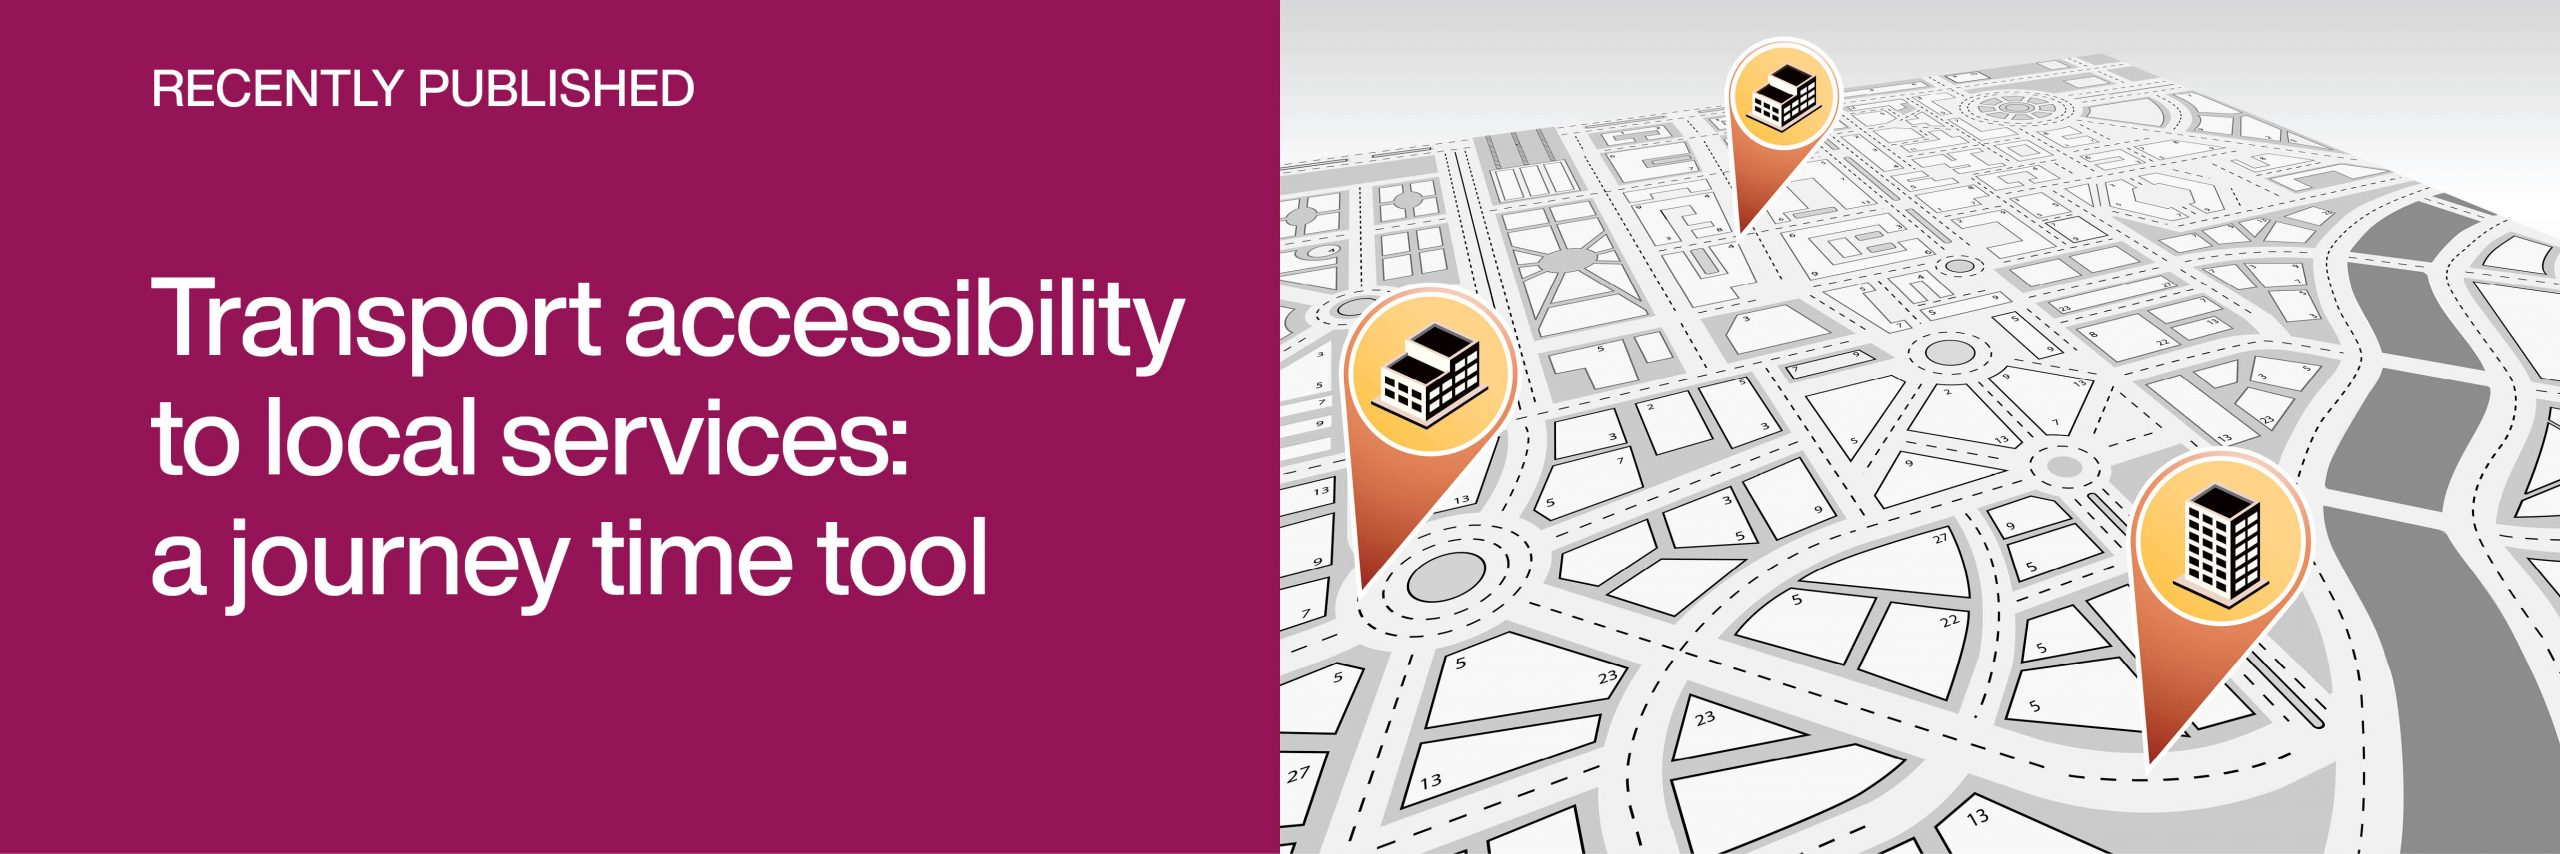 Link to Transport accessibility to local services: a journey time tool